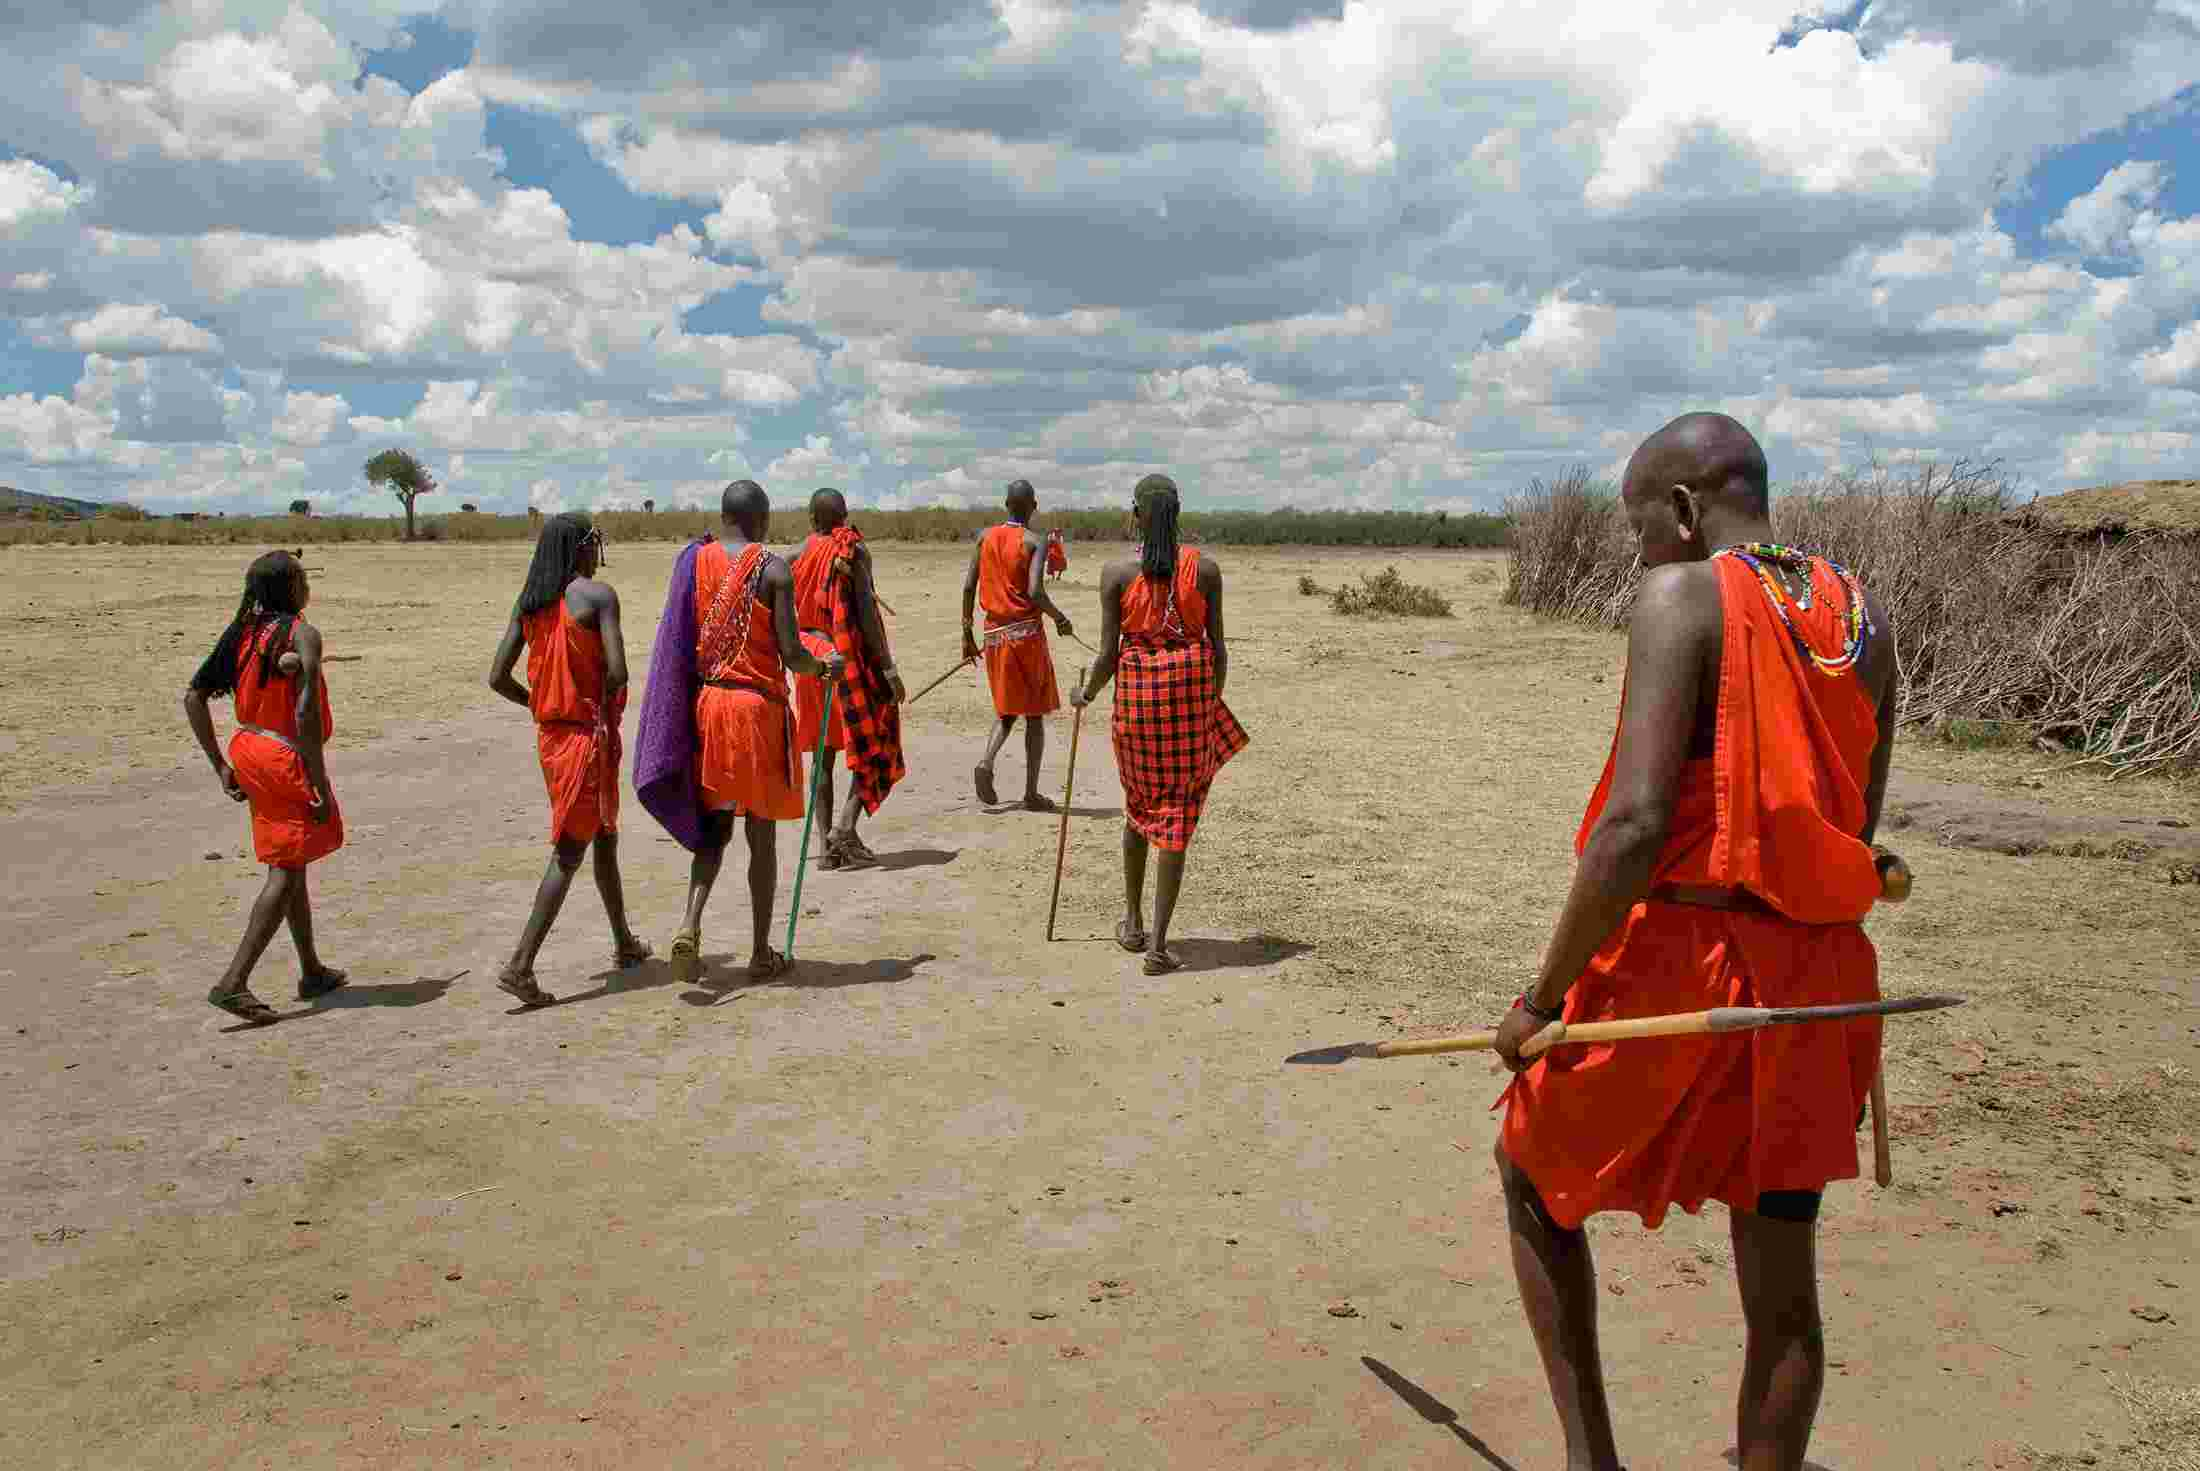 3DAYS MAASAI MARA BUDGET CAMPING +2NIGHTS NAIROBI ACCOMMODATION